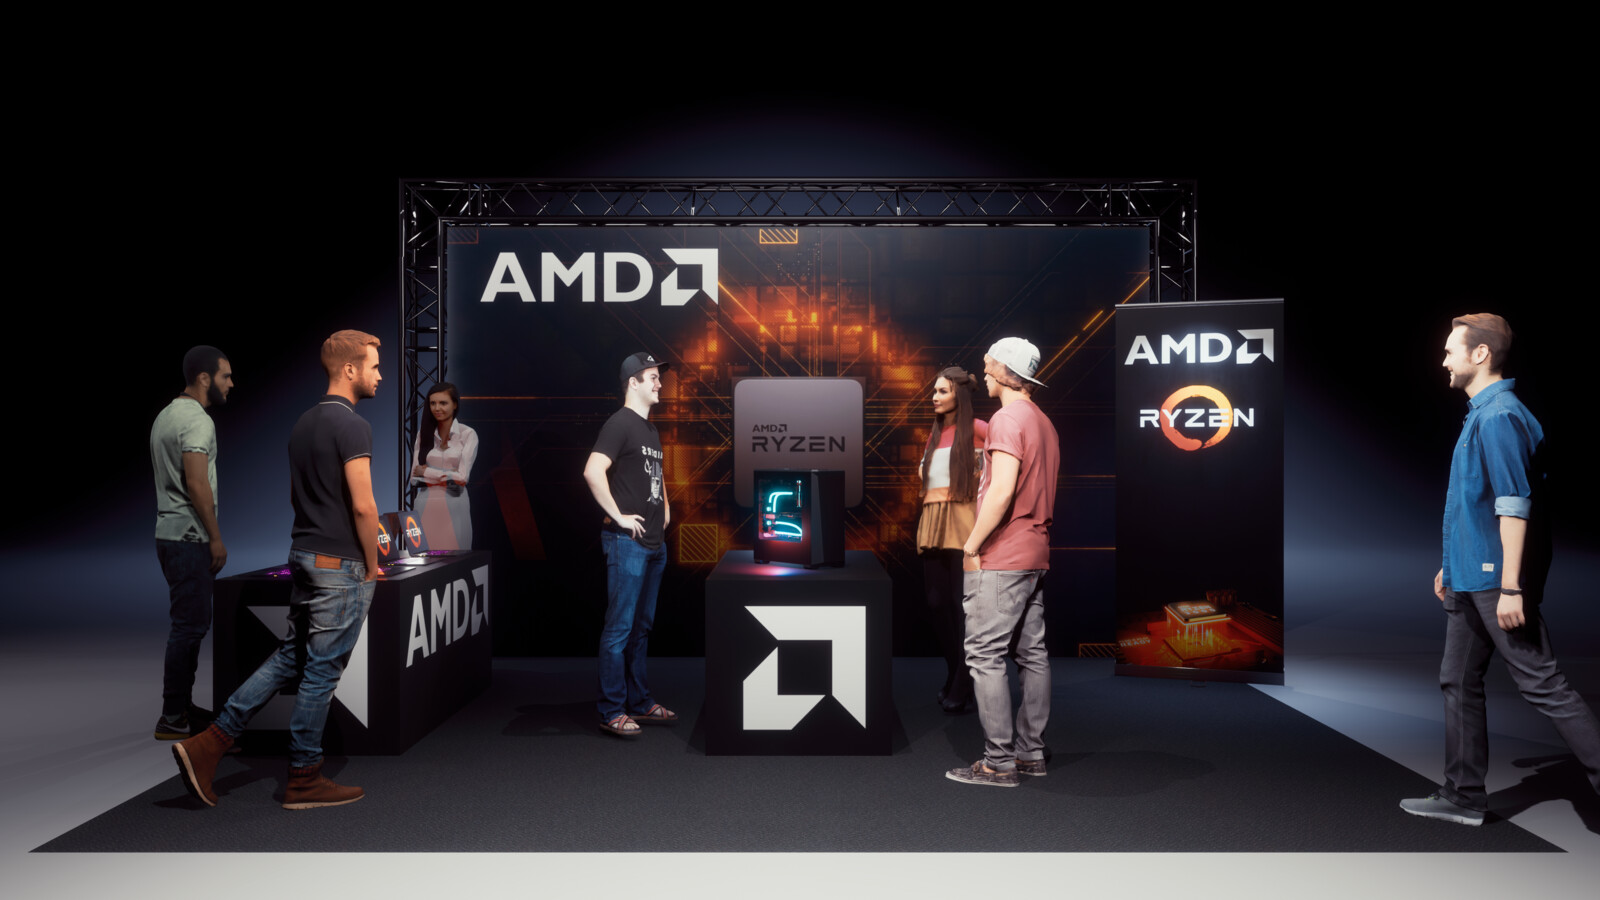 AMD Booth Concept